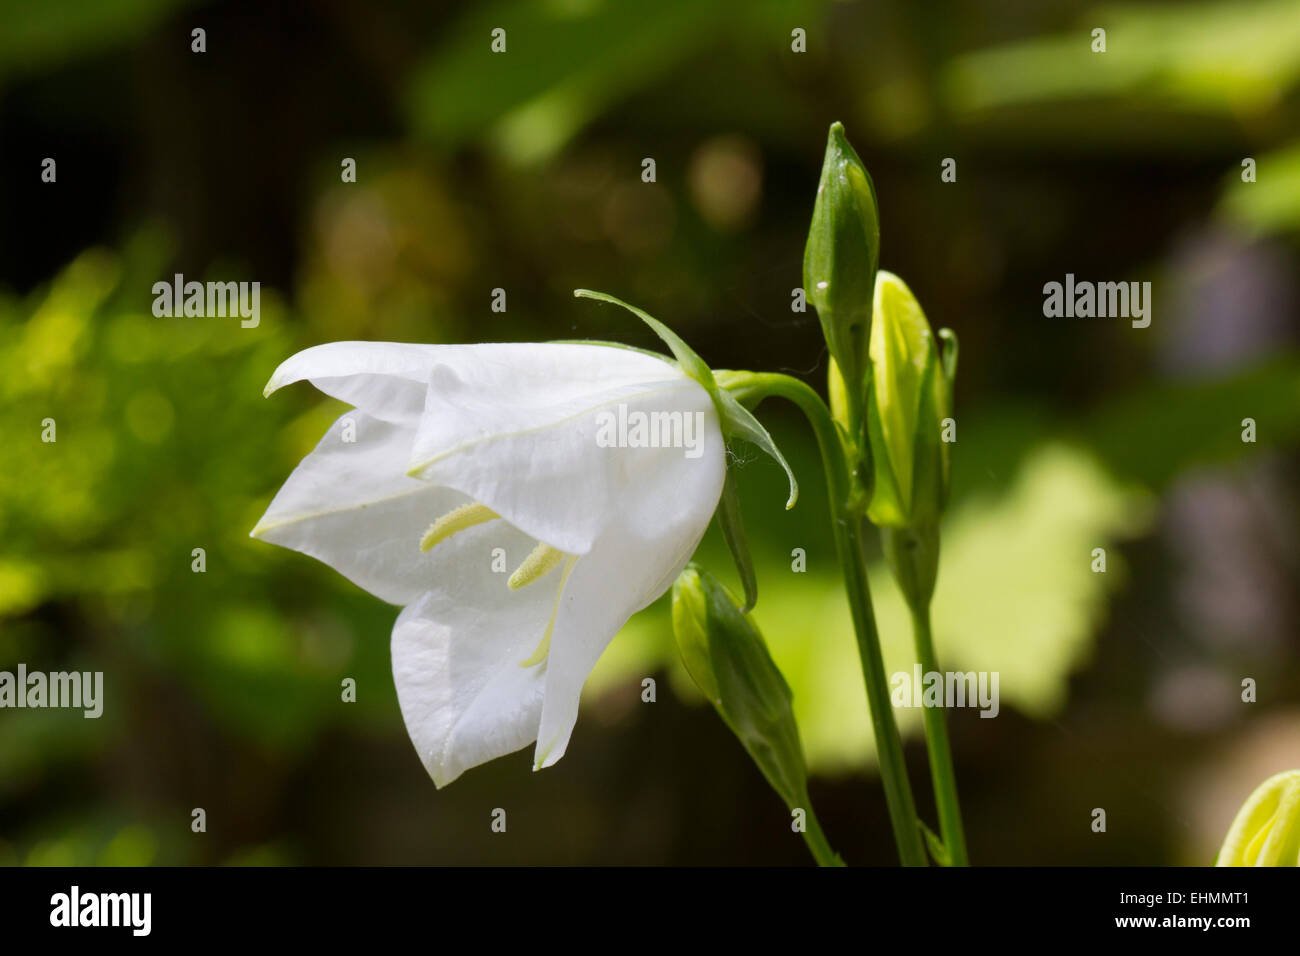 Delicate Bell Shaped Flower Stock Photos Delicate Bell Shaped